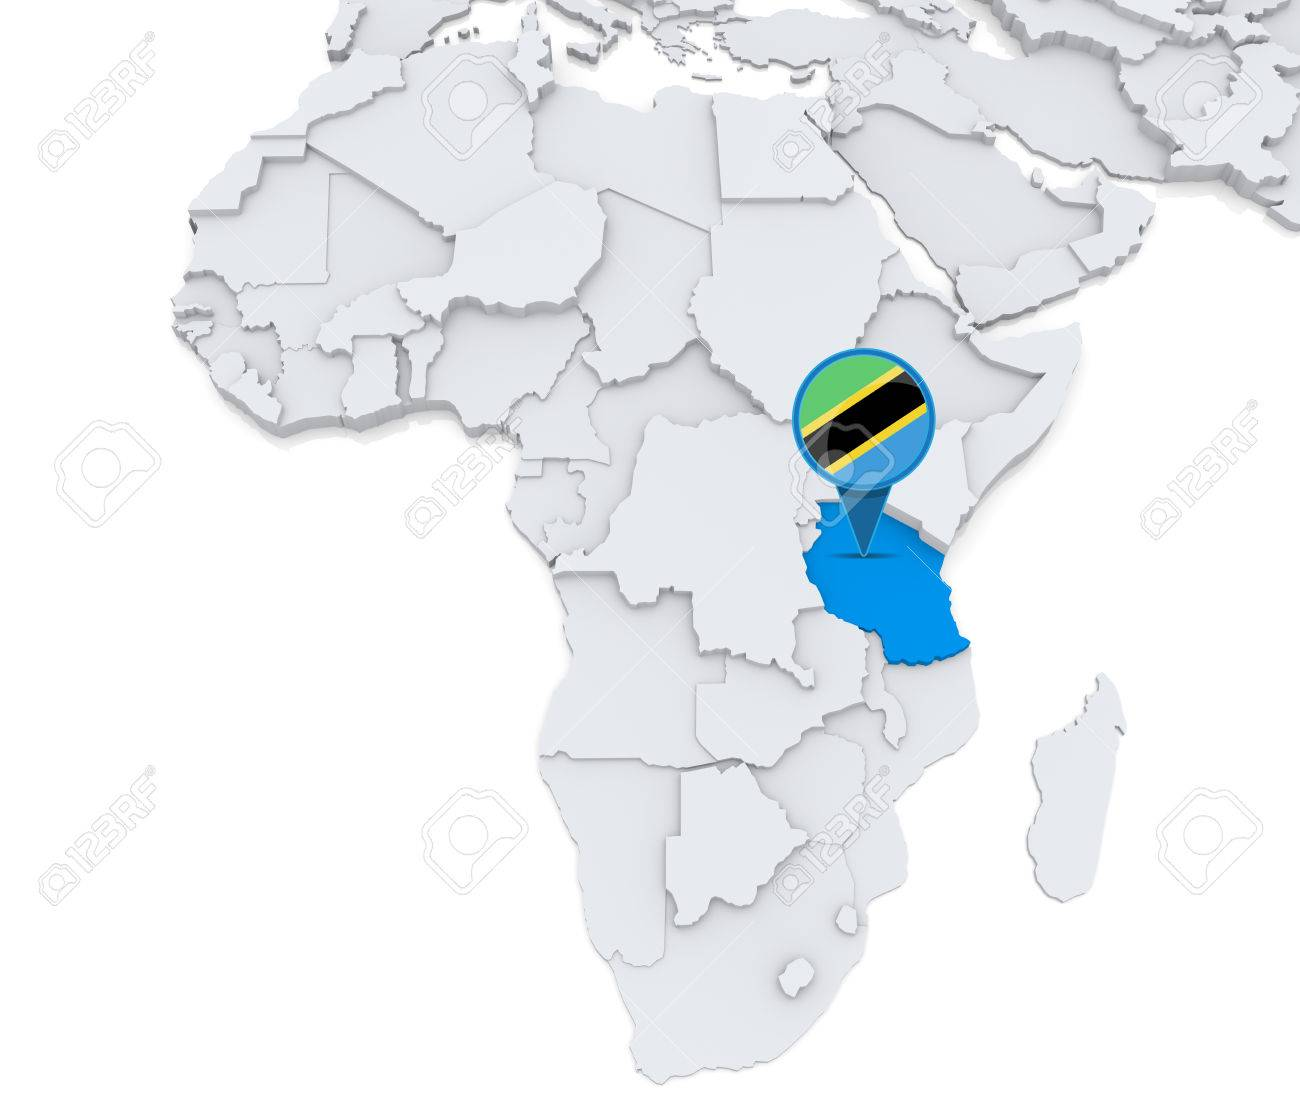 Tanzania On Africa Map.Highlighted Tanzania On Map Of Africa With National Flag Stock Photo